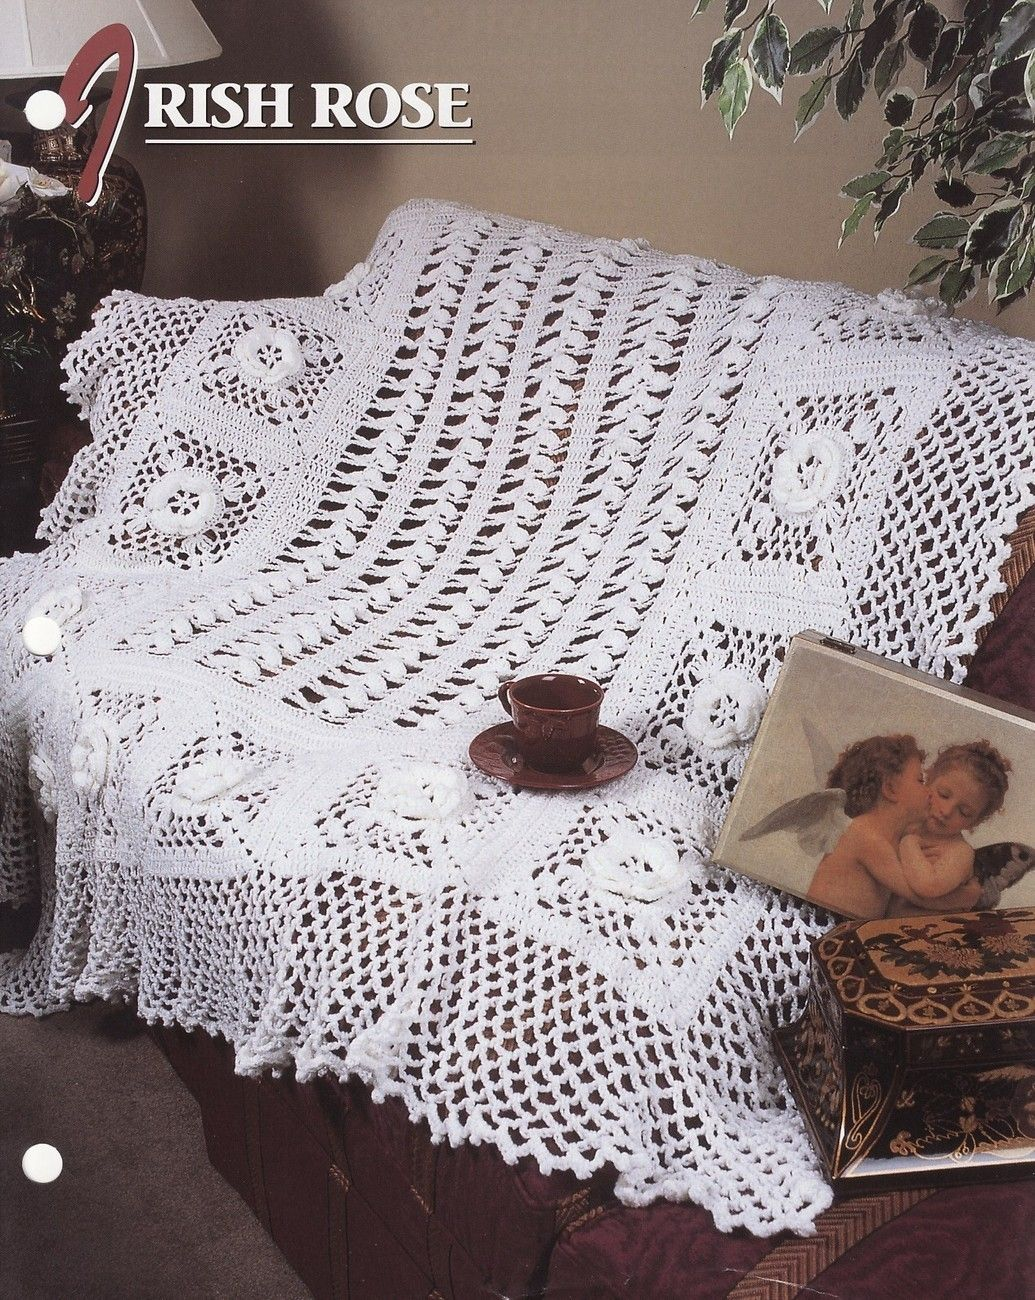 Irish lace afghan or bedspread floral crochet pattern ebay irish lace afghan or bedspread floral crochet pattern ebay dt1010fo